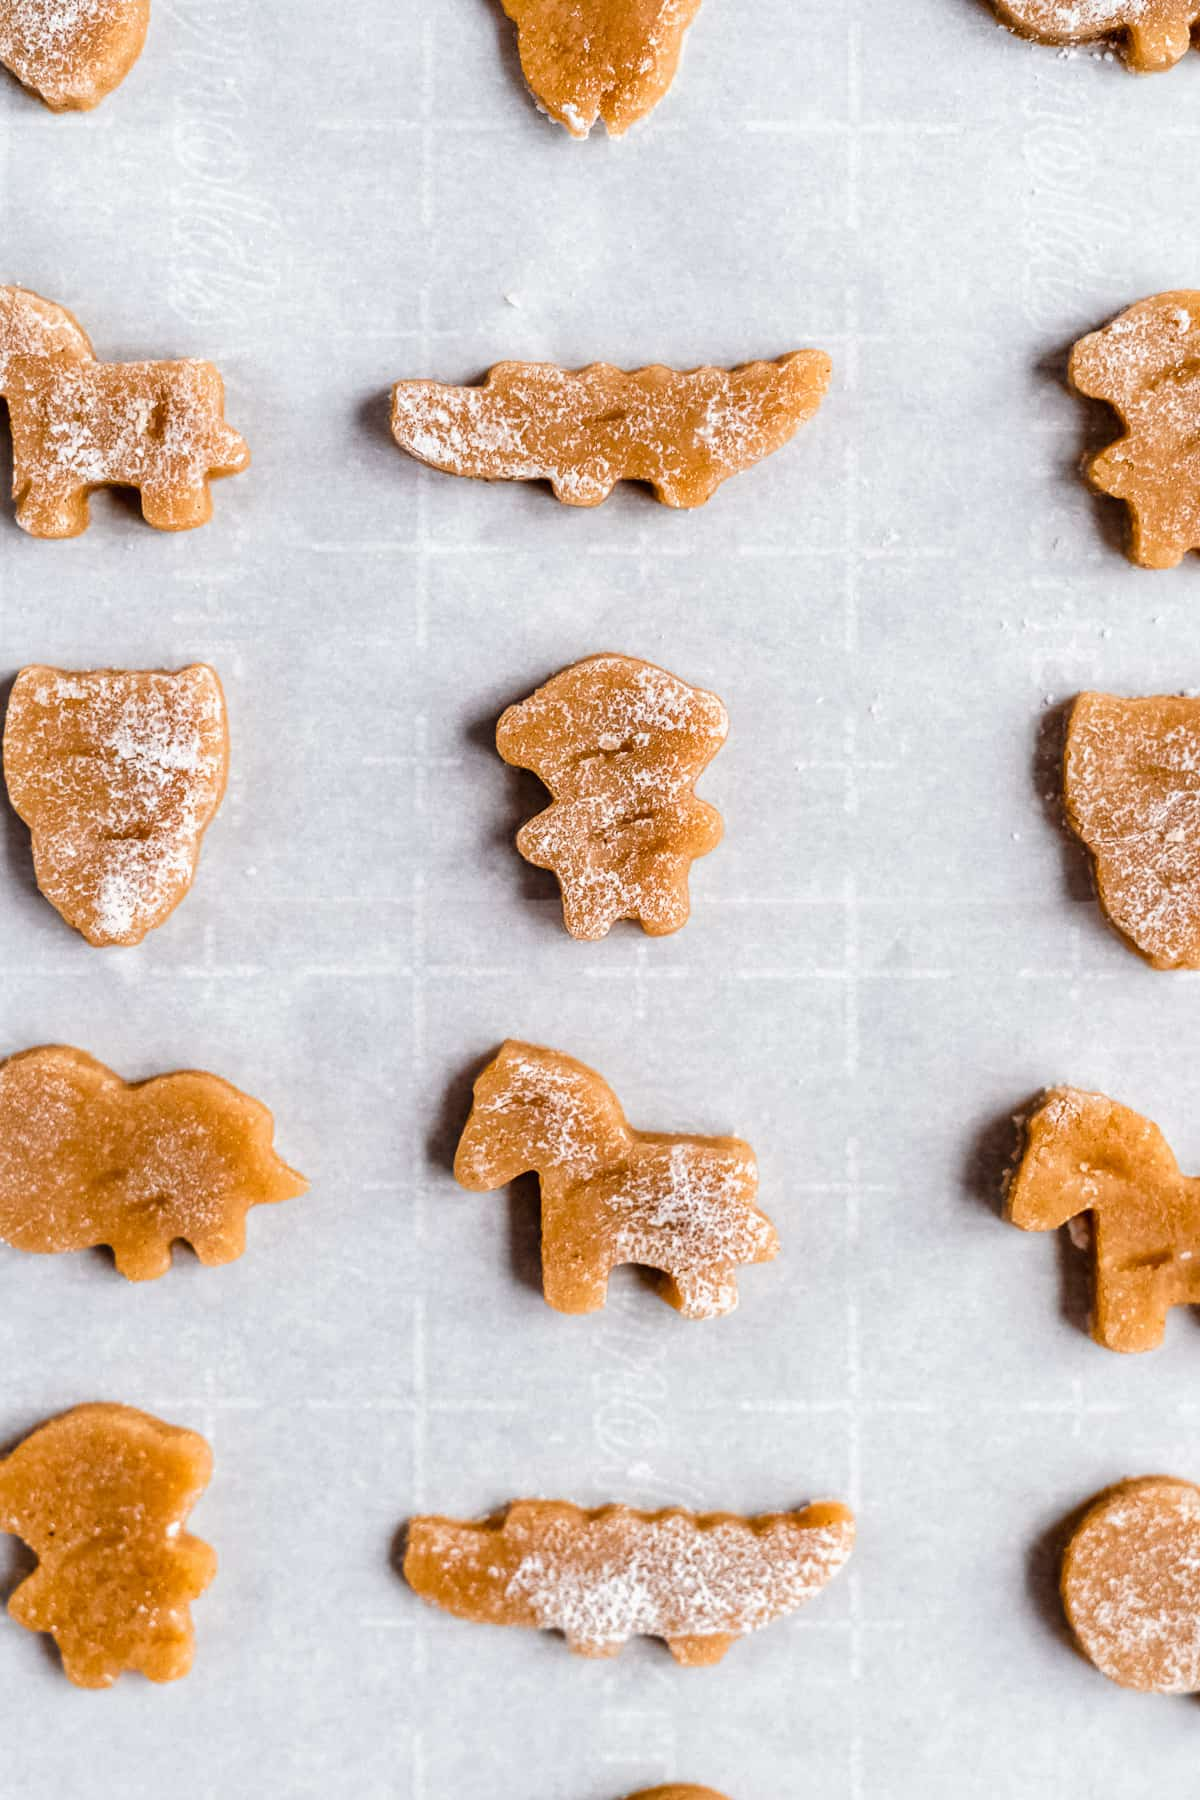 Cookie dough shaped like animals on a piece of white parchment paper.